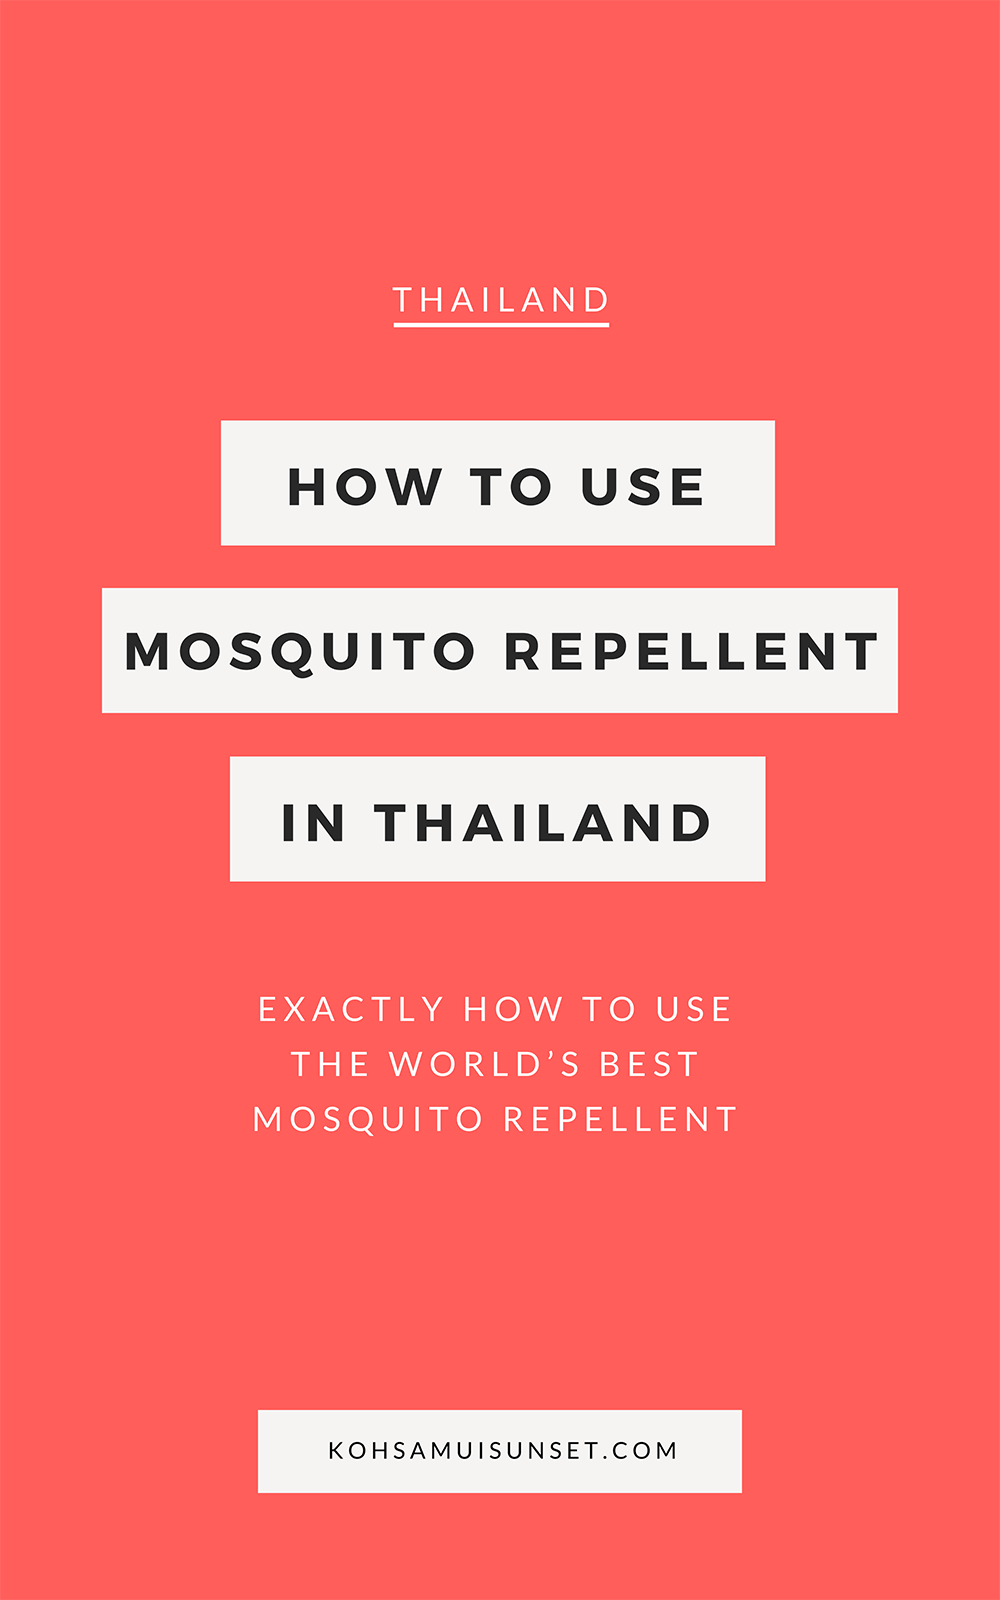 Incognito Mosquito Repellent The Best Natural Repellent Mosquito Repellent Mosquito Best Mosquito Repellent